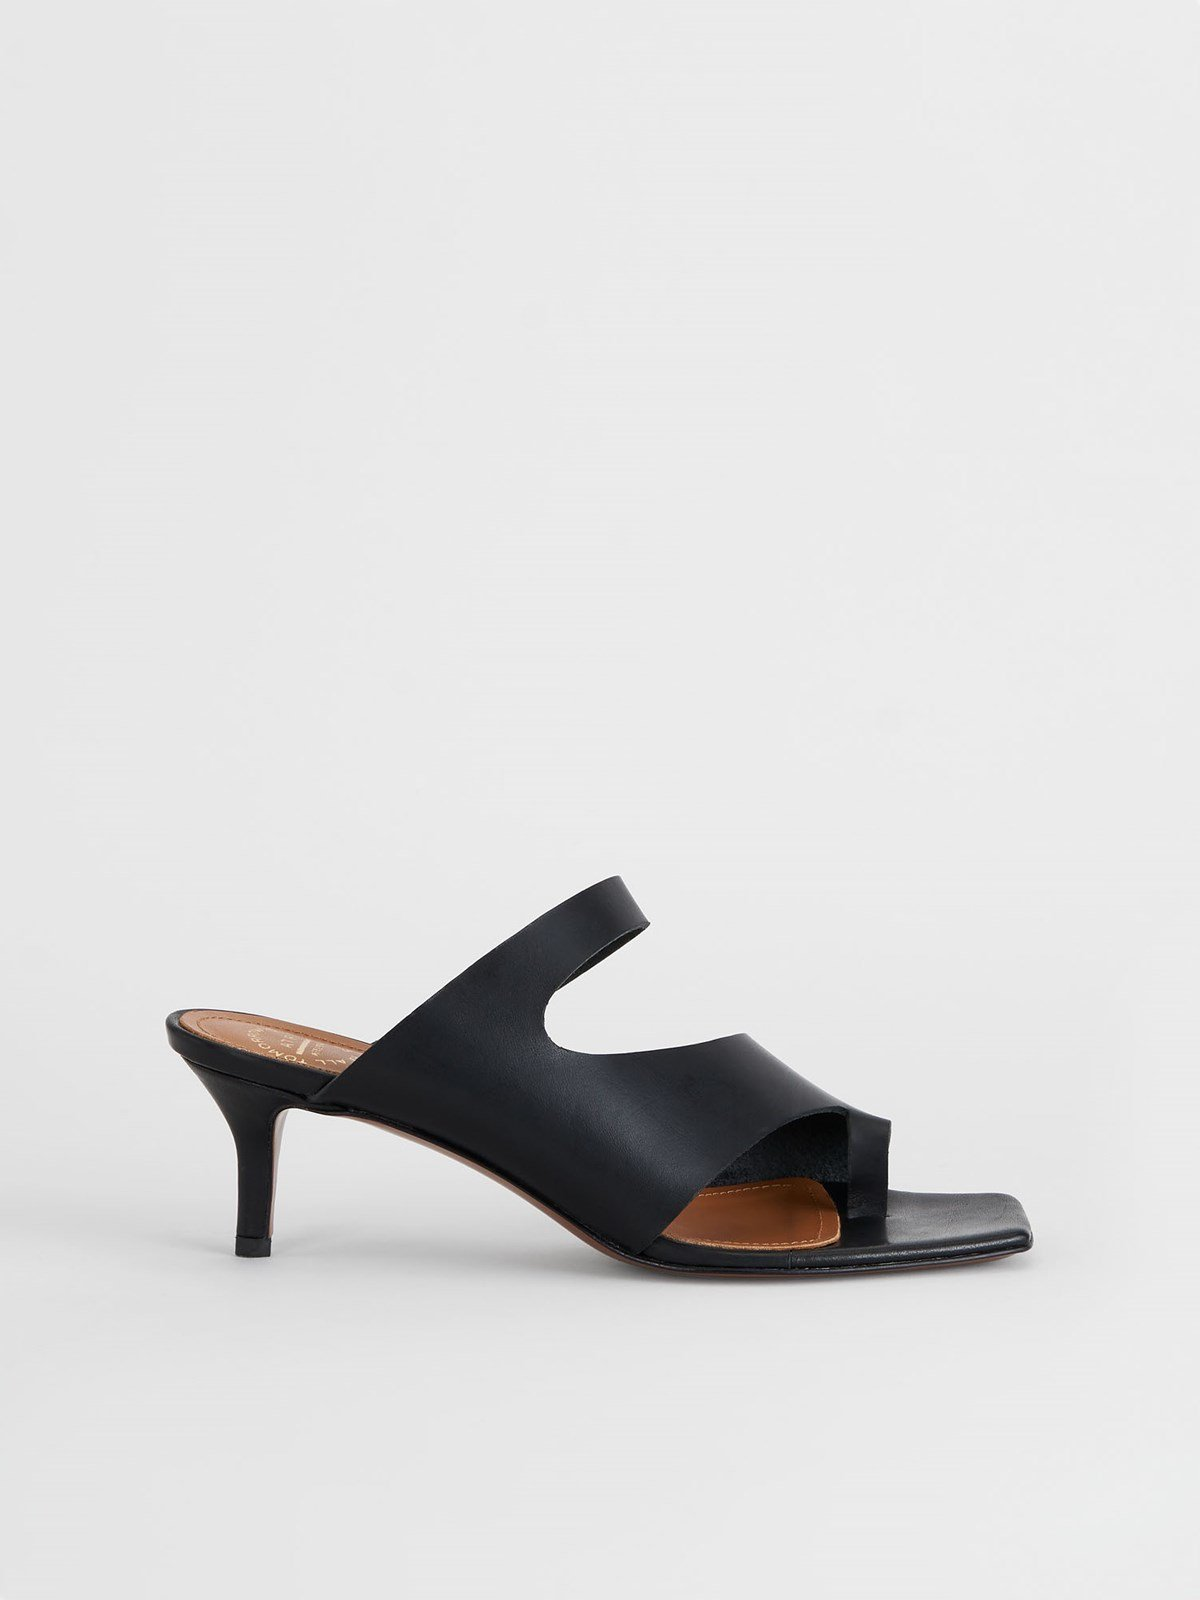 Pittuini Black Cutout heels